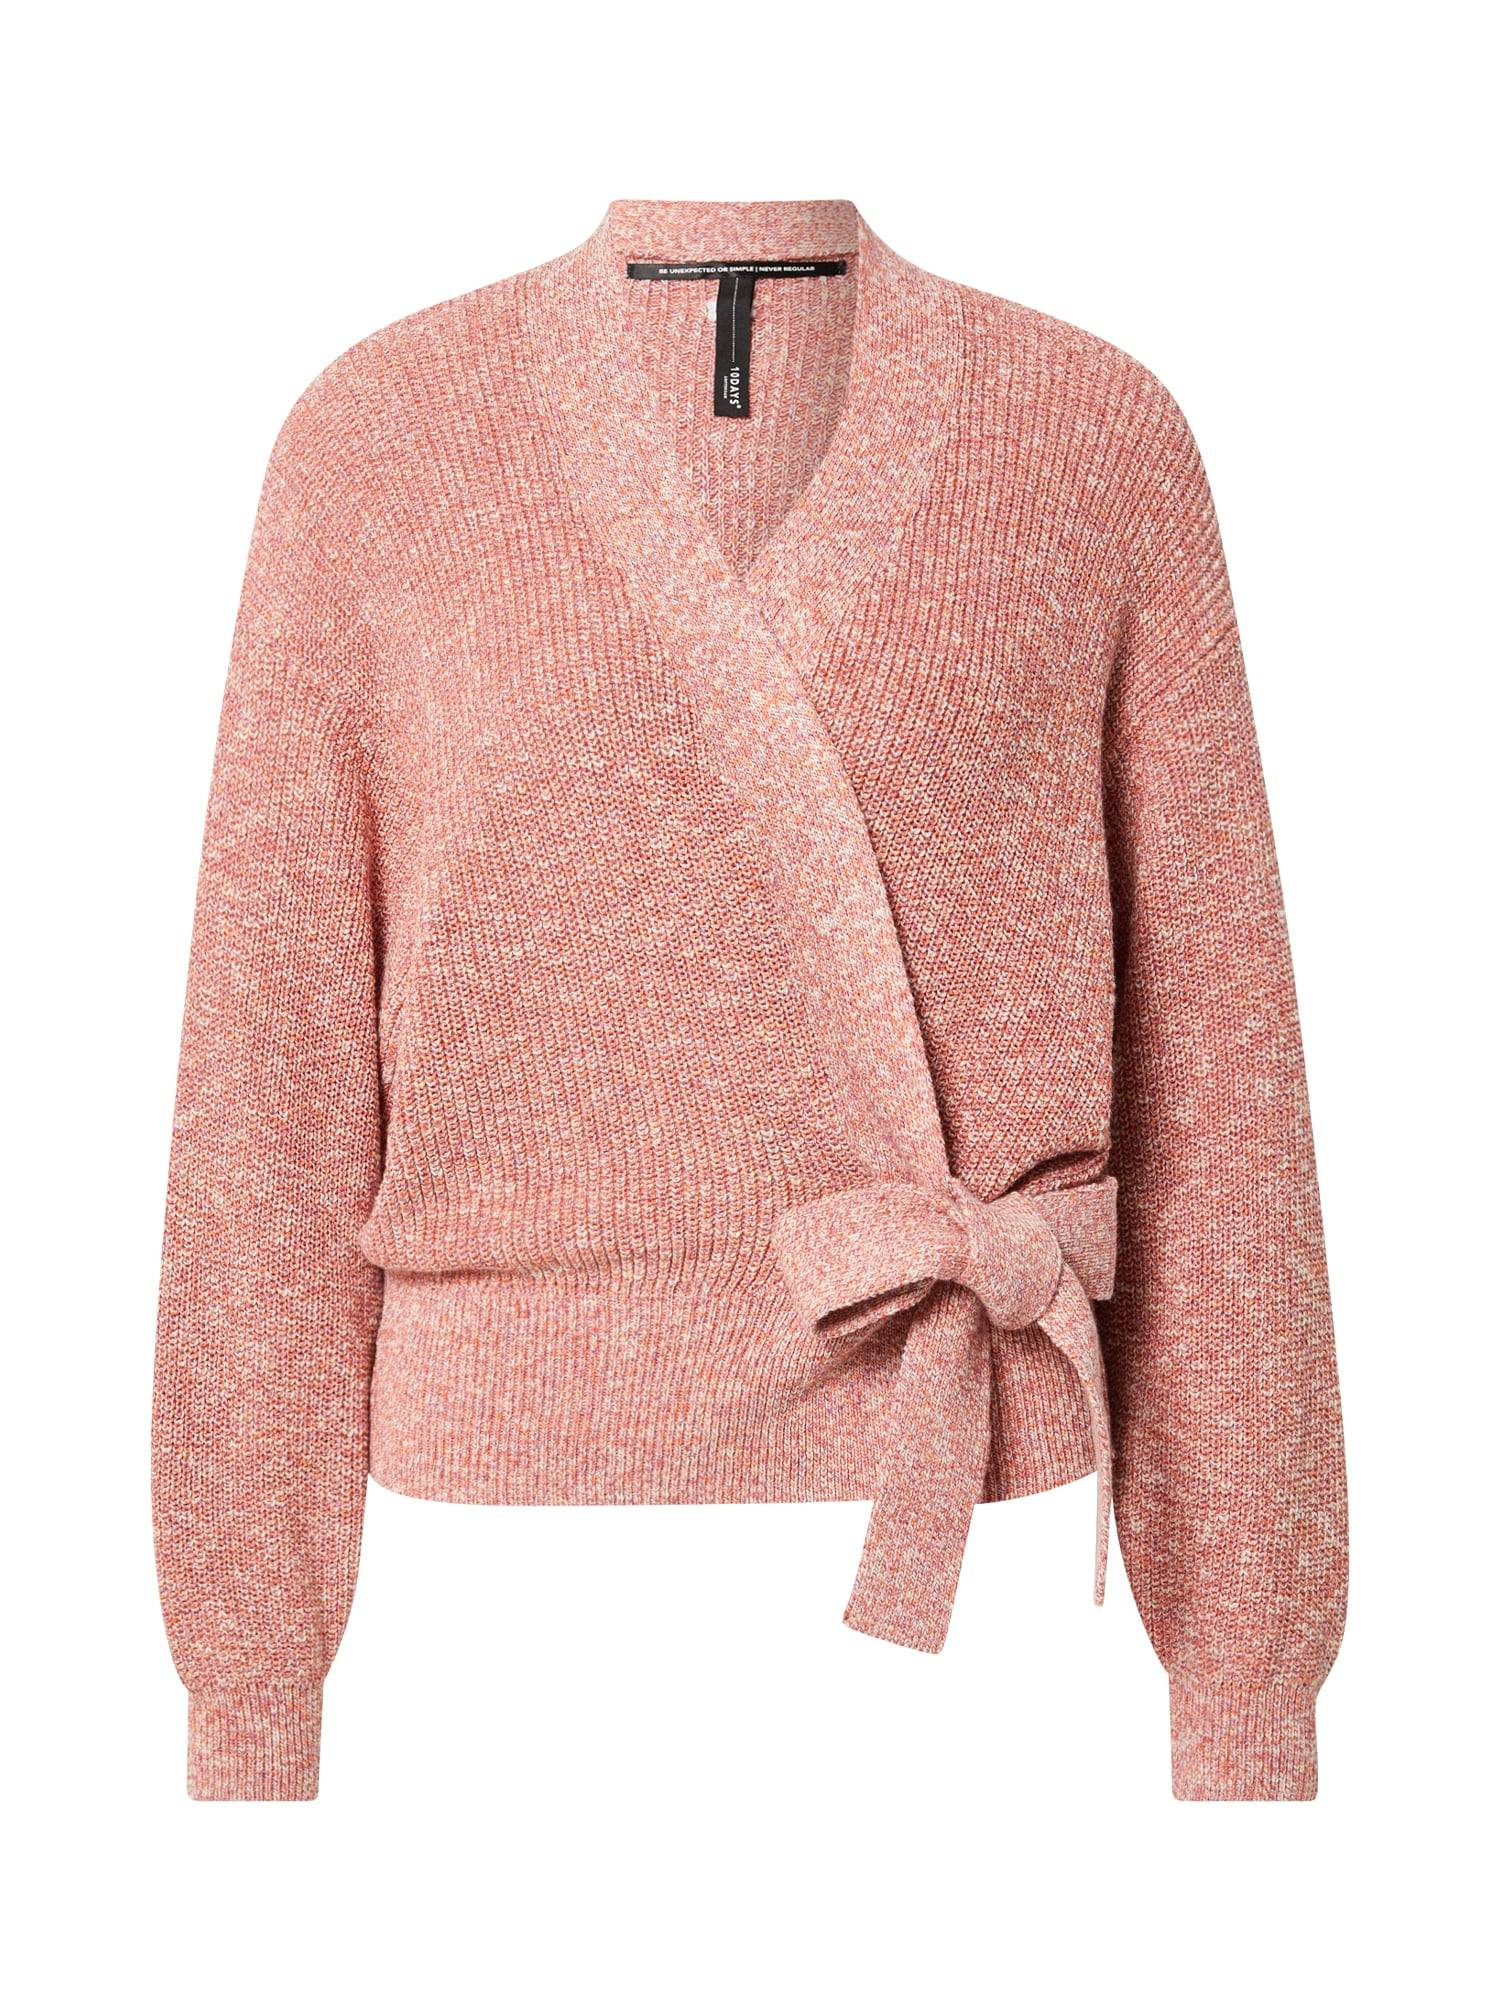 10Days Cardigan  - Rose - Taille: XS - female